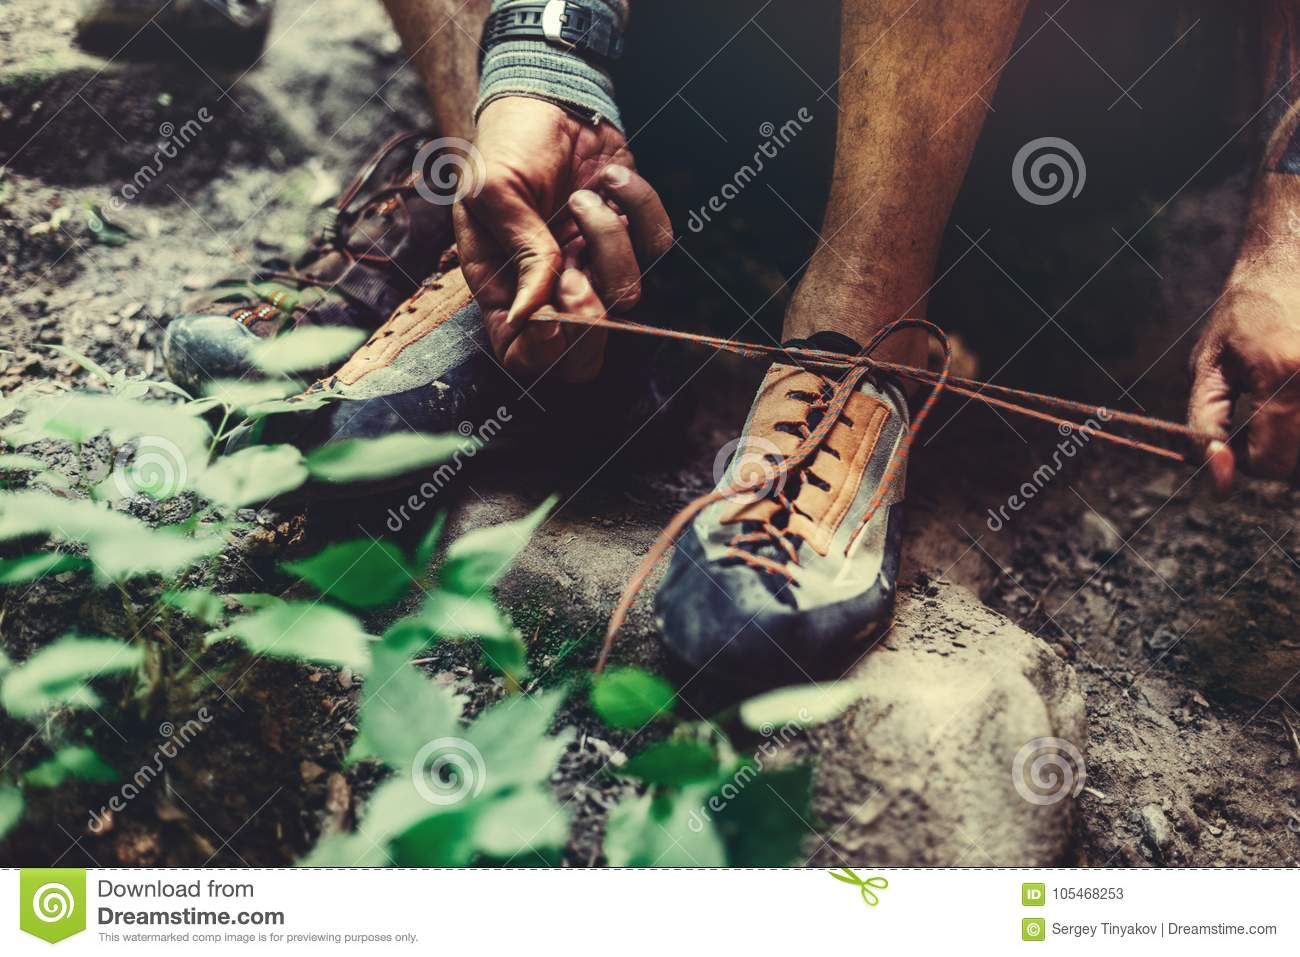 Man Dresses Climbing Shoes For Climbing, close-up. Extreme Hobby Outdoor Activity Concept